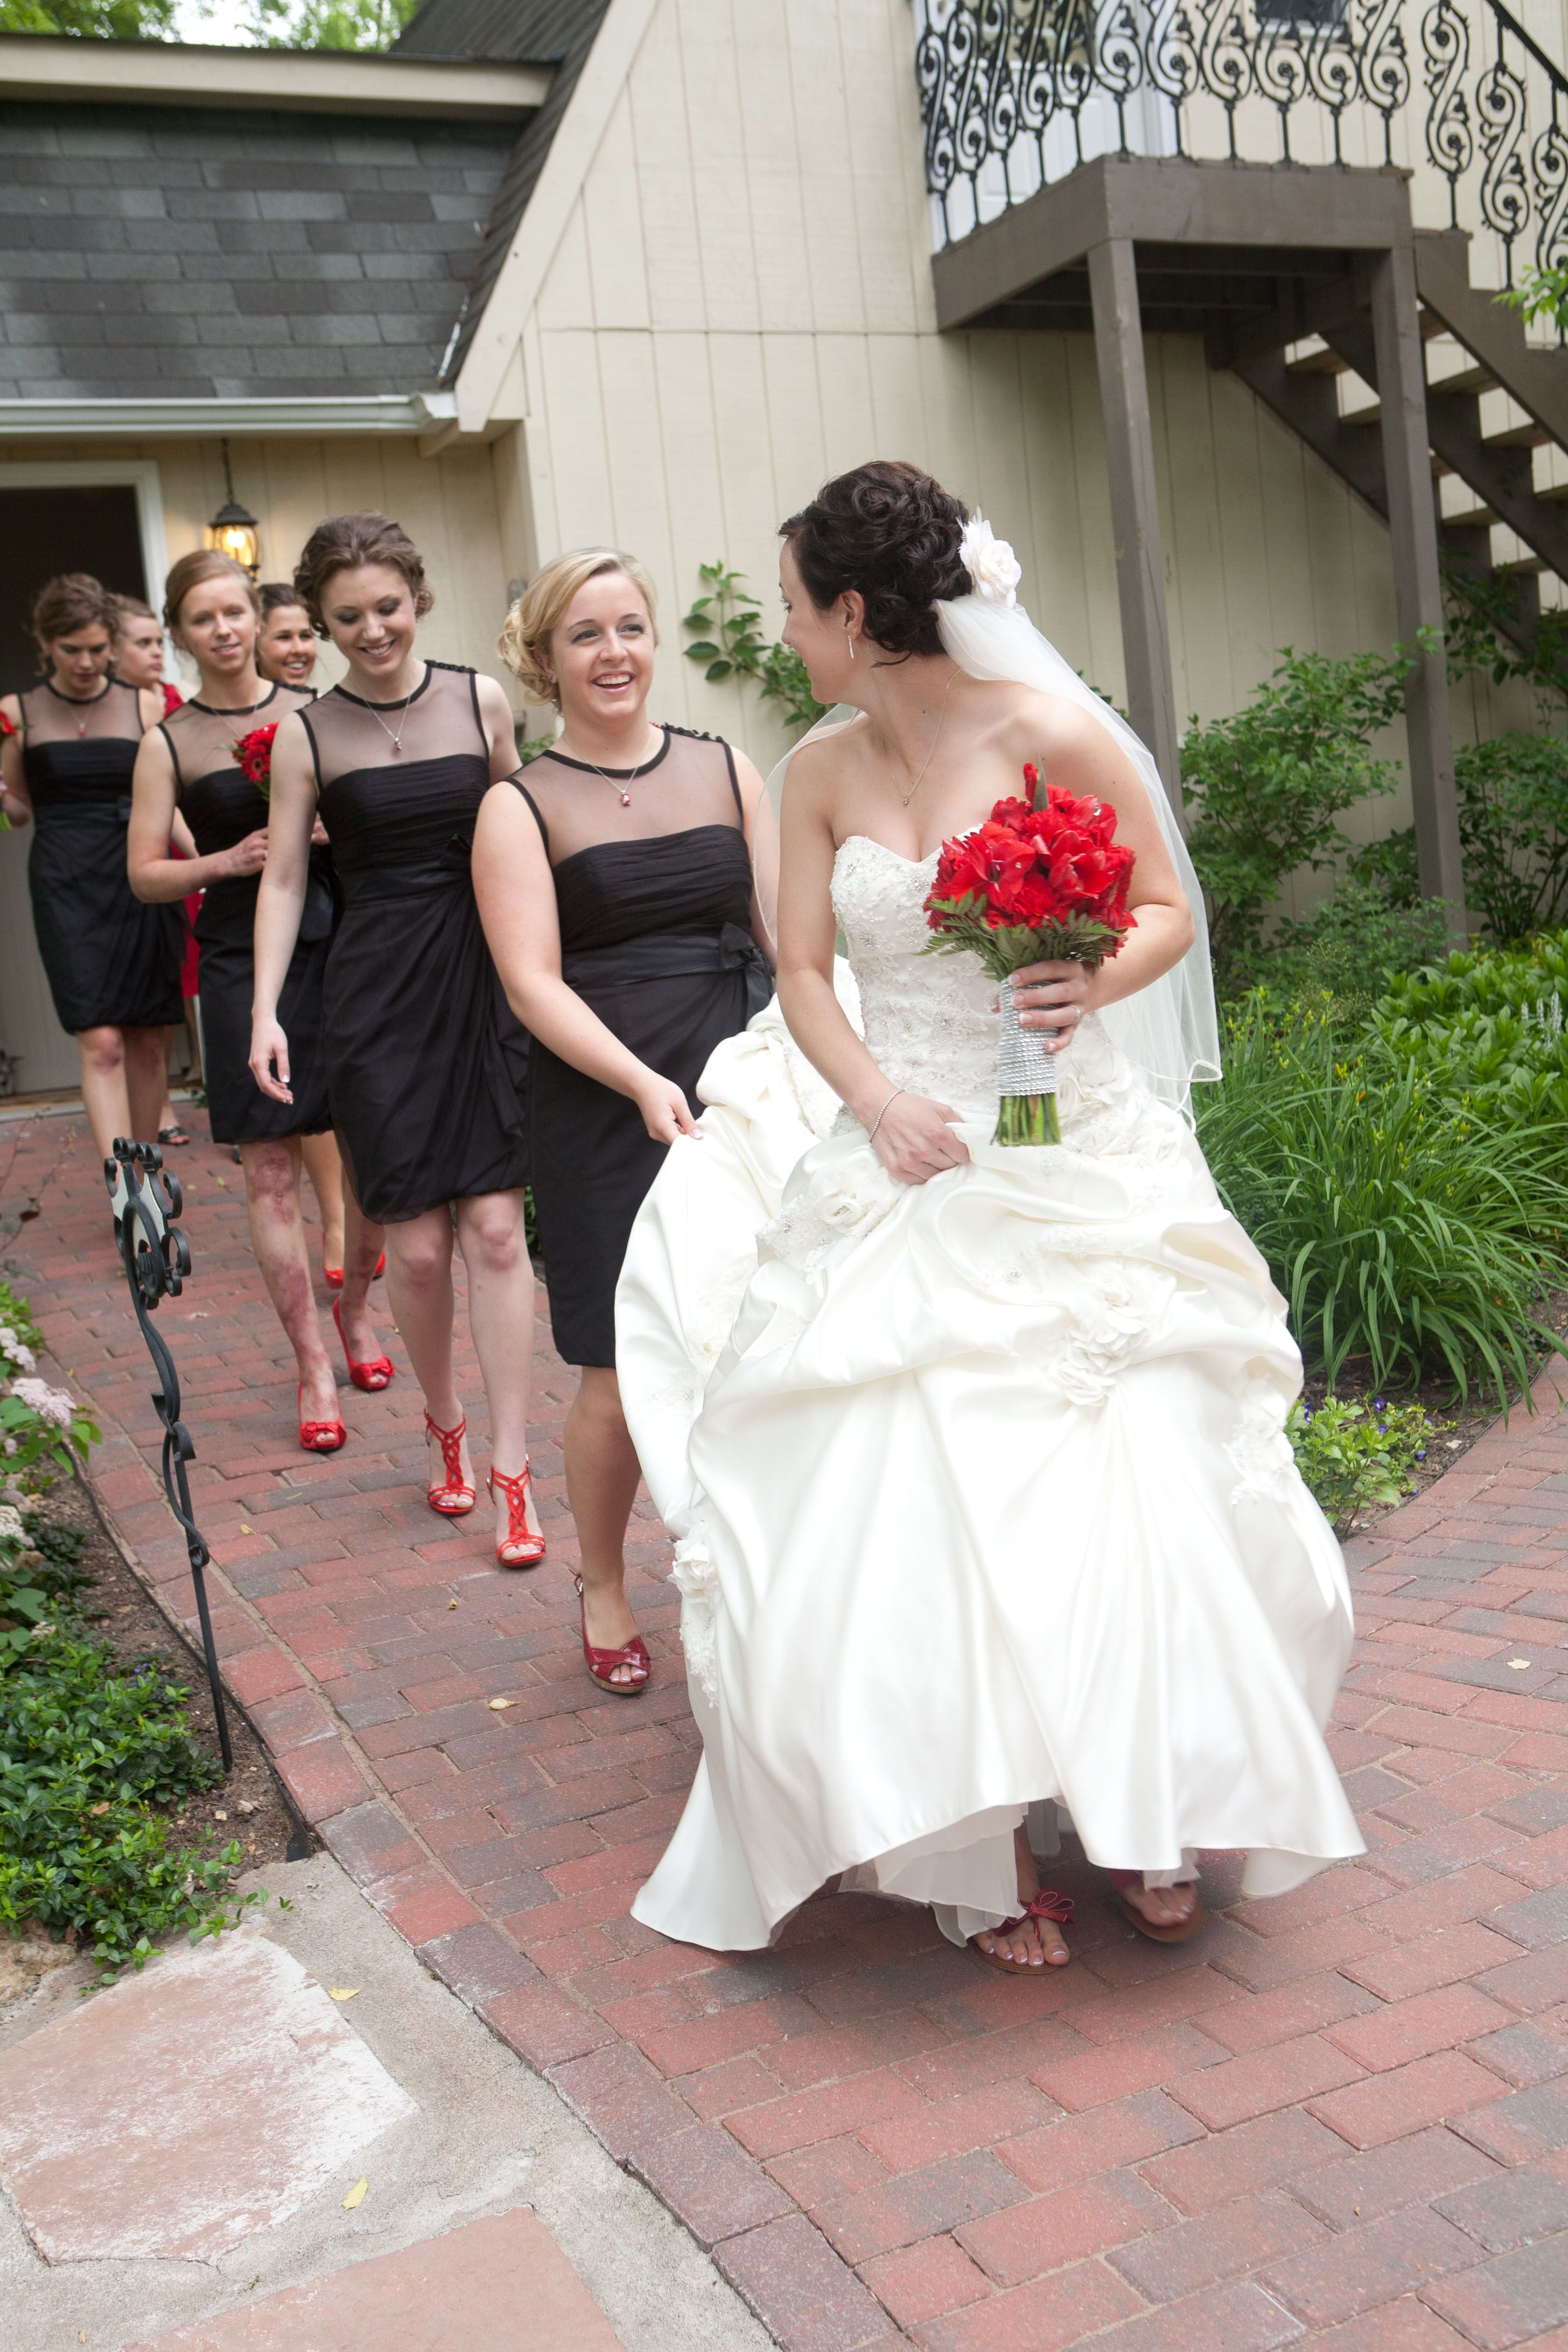 No Bride Could Walk Down The Aisle Without Her Girls Minneapolisweddingphotography Brides Minneapolis Wedding Photography Movie Theme Wedding Wedding Shots